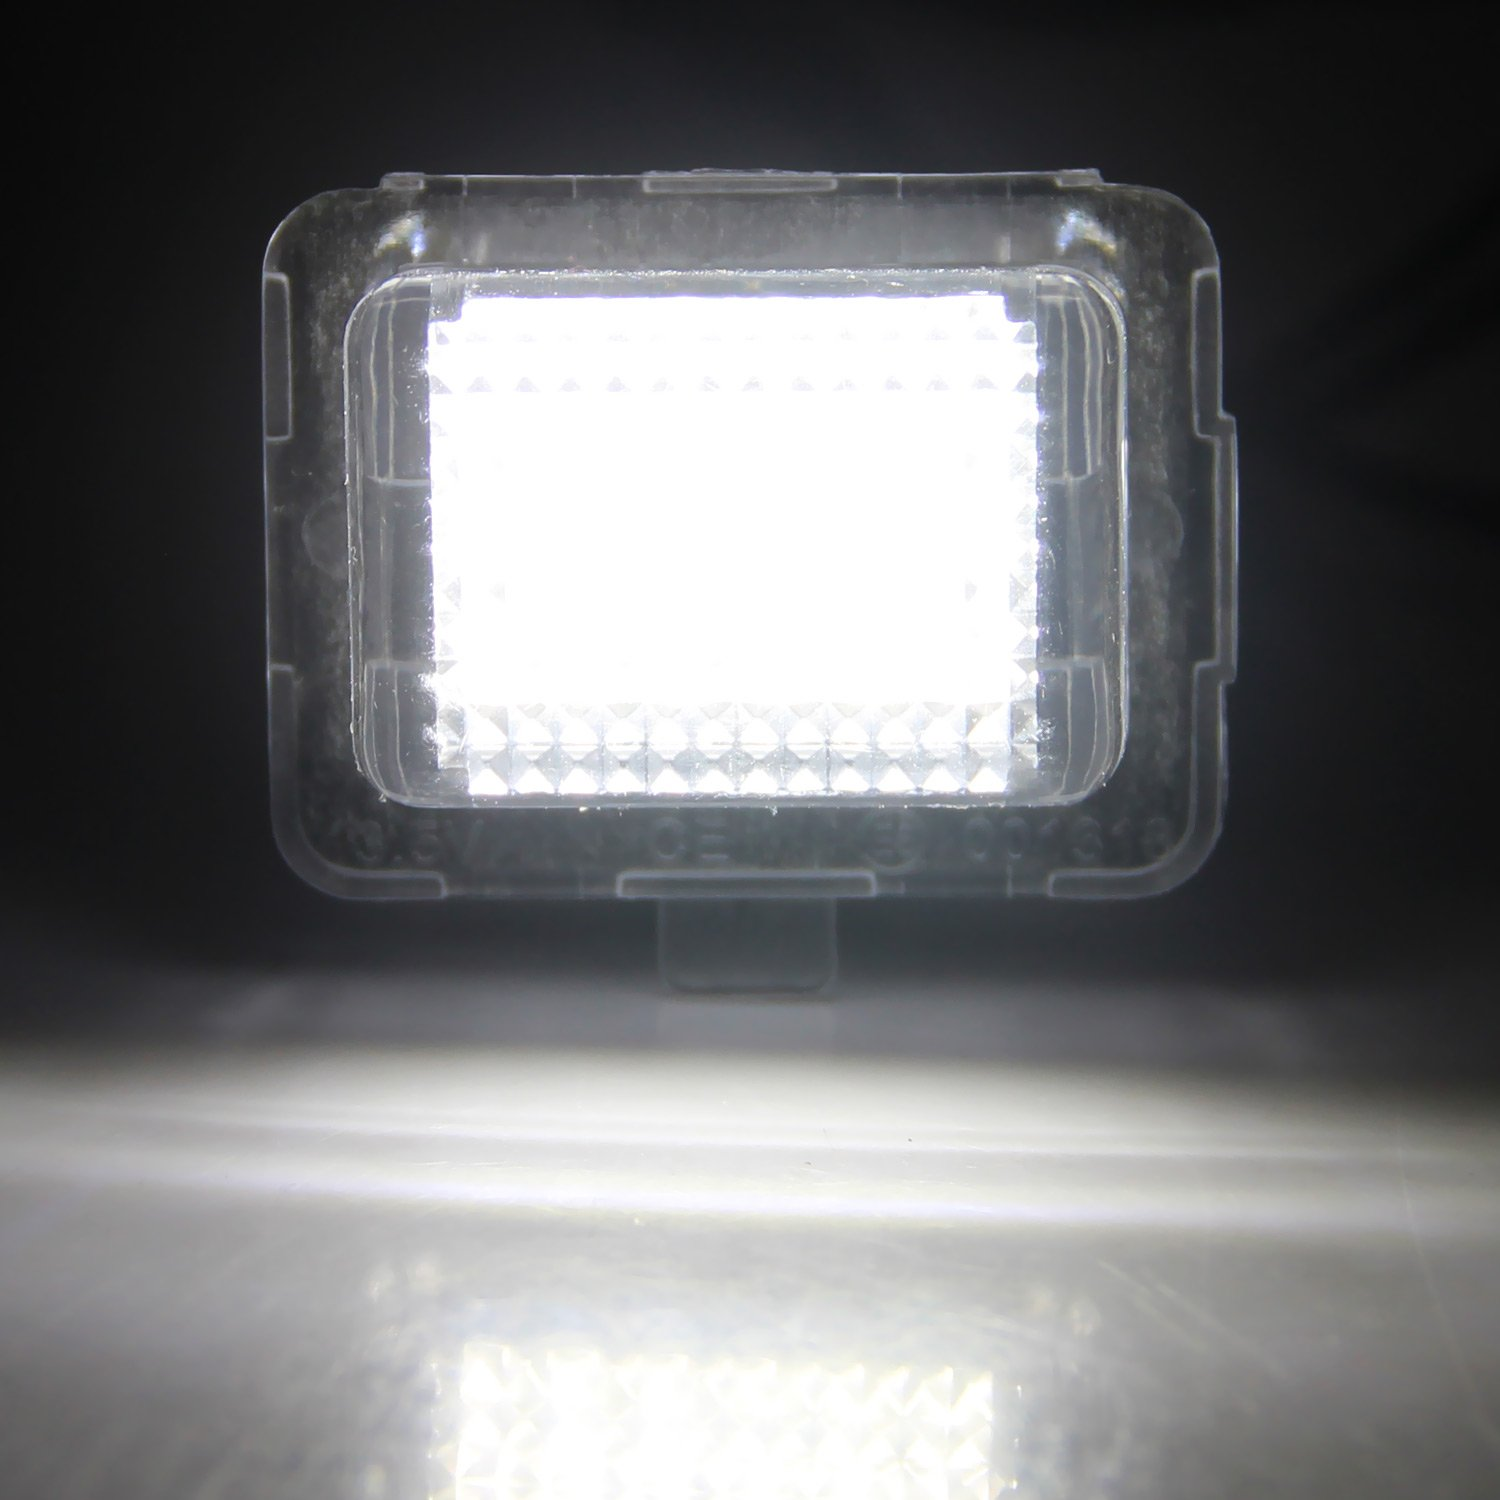 SY-052 Win Power Error Free LED Licence Plate Lights Assembly White Lamp for W204 W212 W216 W221 W207